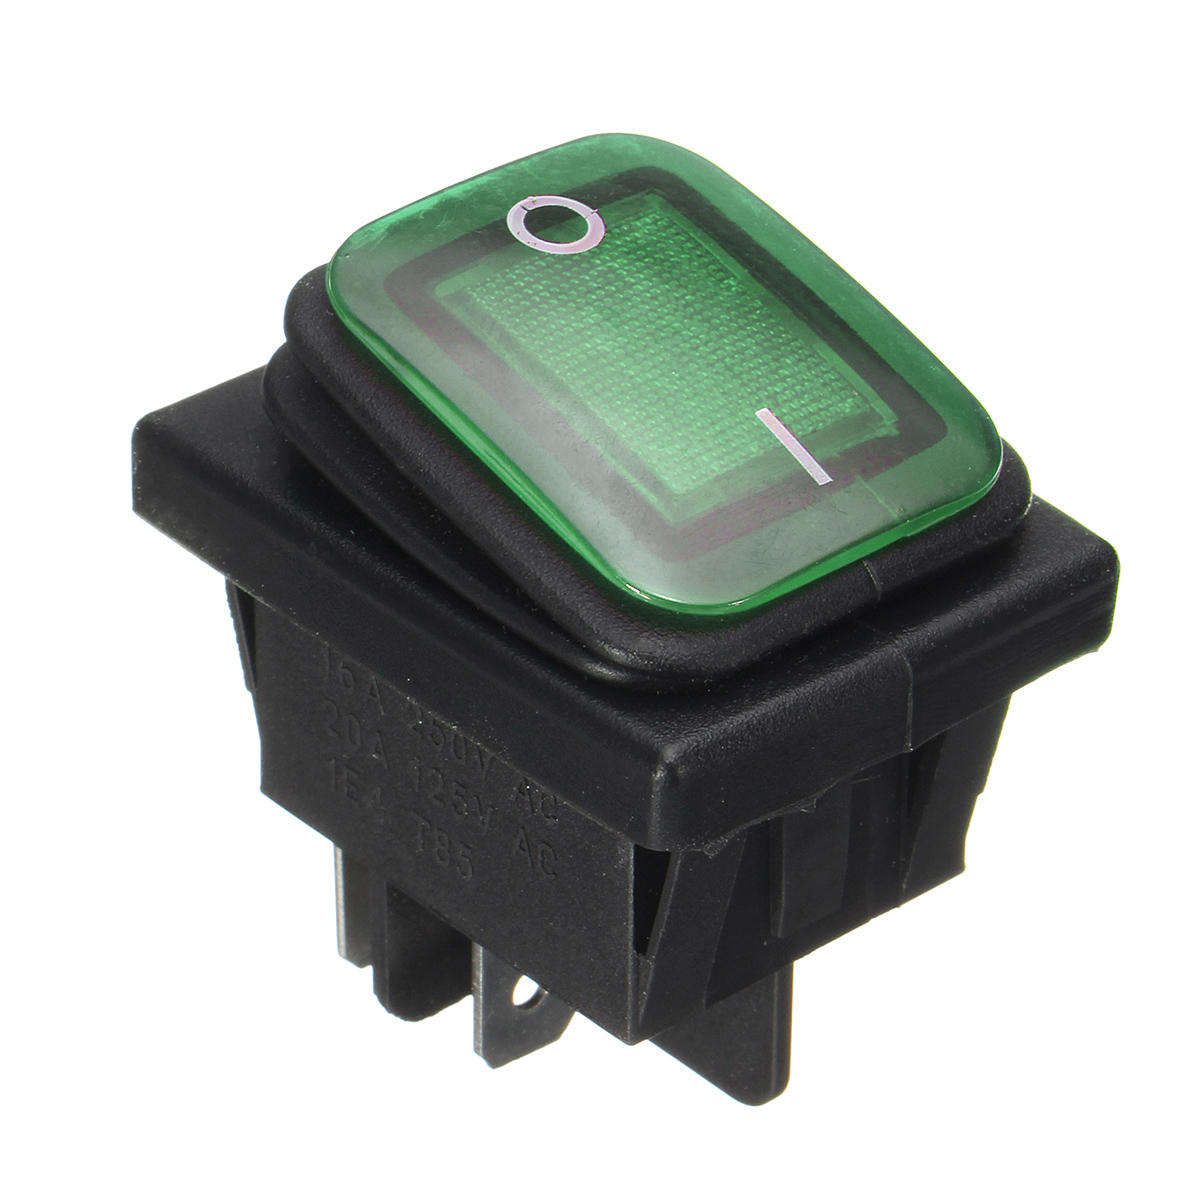 Boat Parts & Accessories Rocker Toggle Switch On-off-on 4 Pins 12v Dc Car Boat Automobiles Waterproof Led Latching Switches